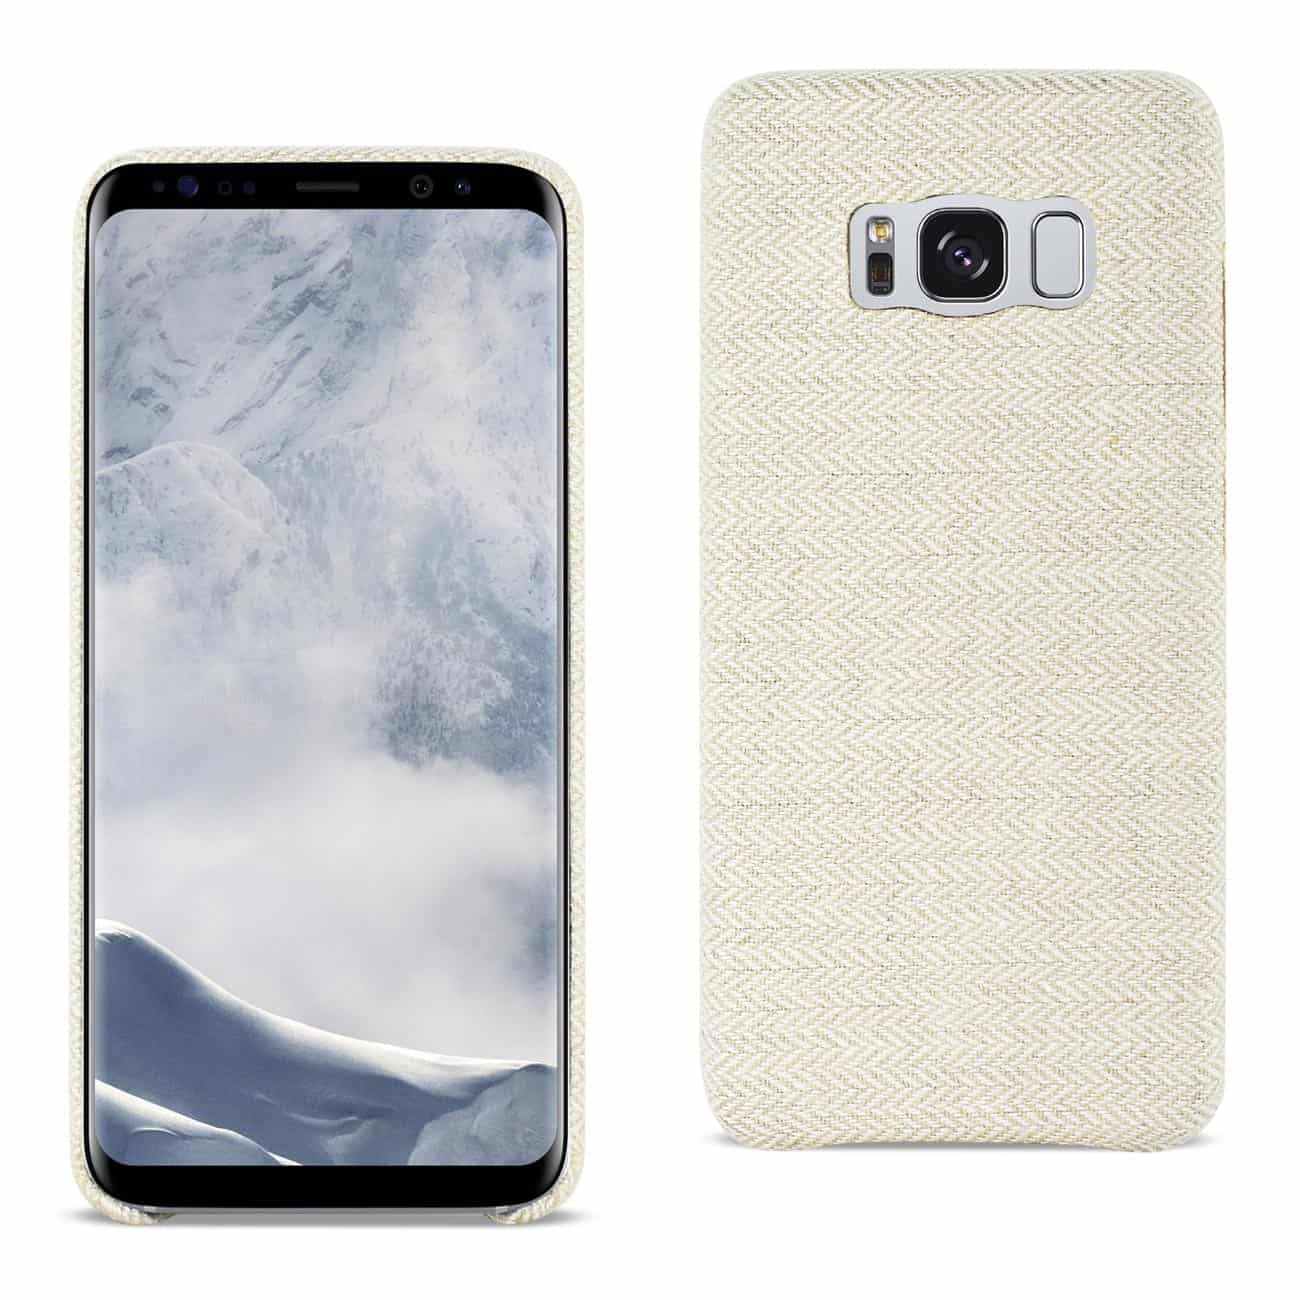 SAMSUNG GALAXY S8 HERRINGBONE FABRIC IN BEIGE